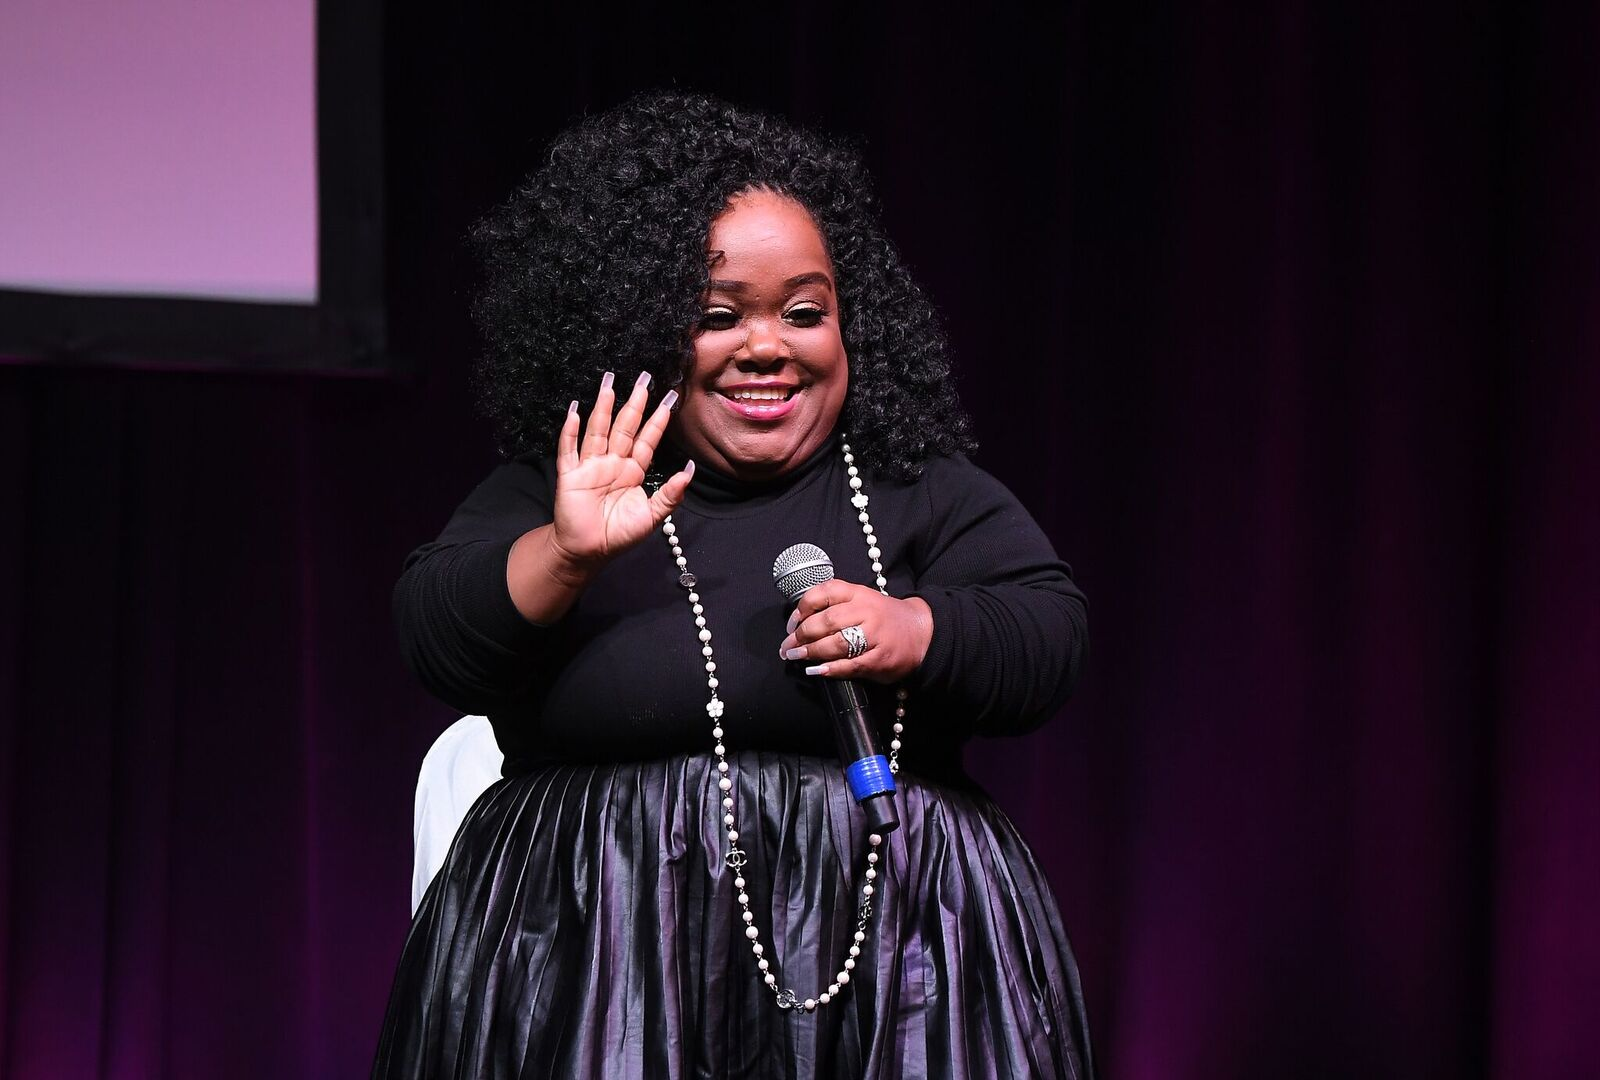 """Ashley """"Minnie"""" Ross onstage at the Atlanta Ultimate Women's Expoon November 10, 2019, in Georgia 